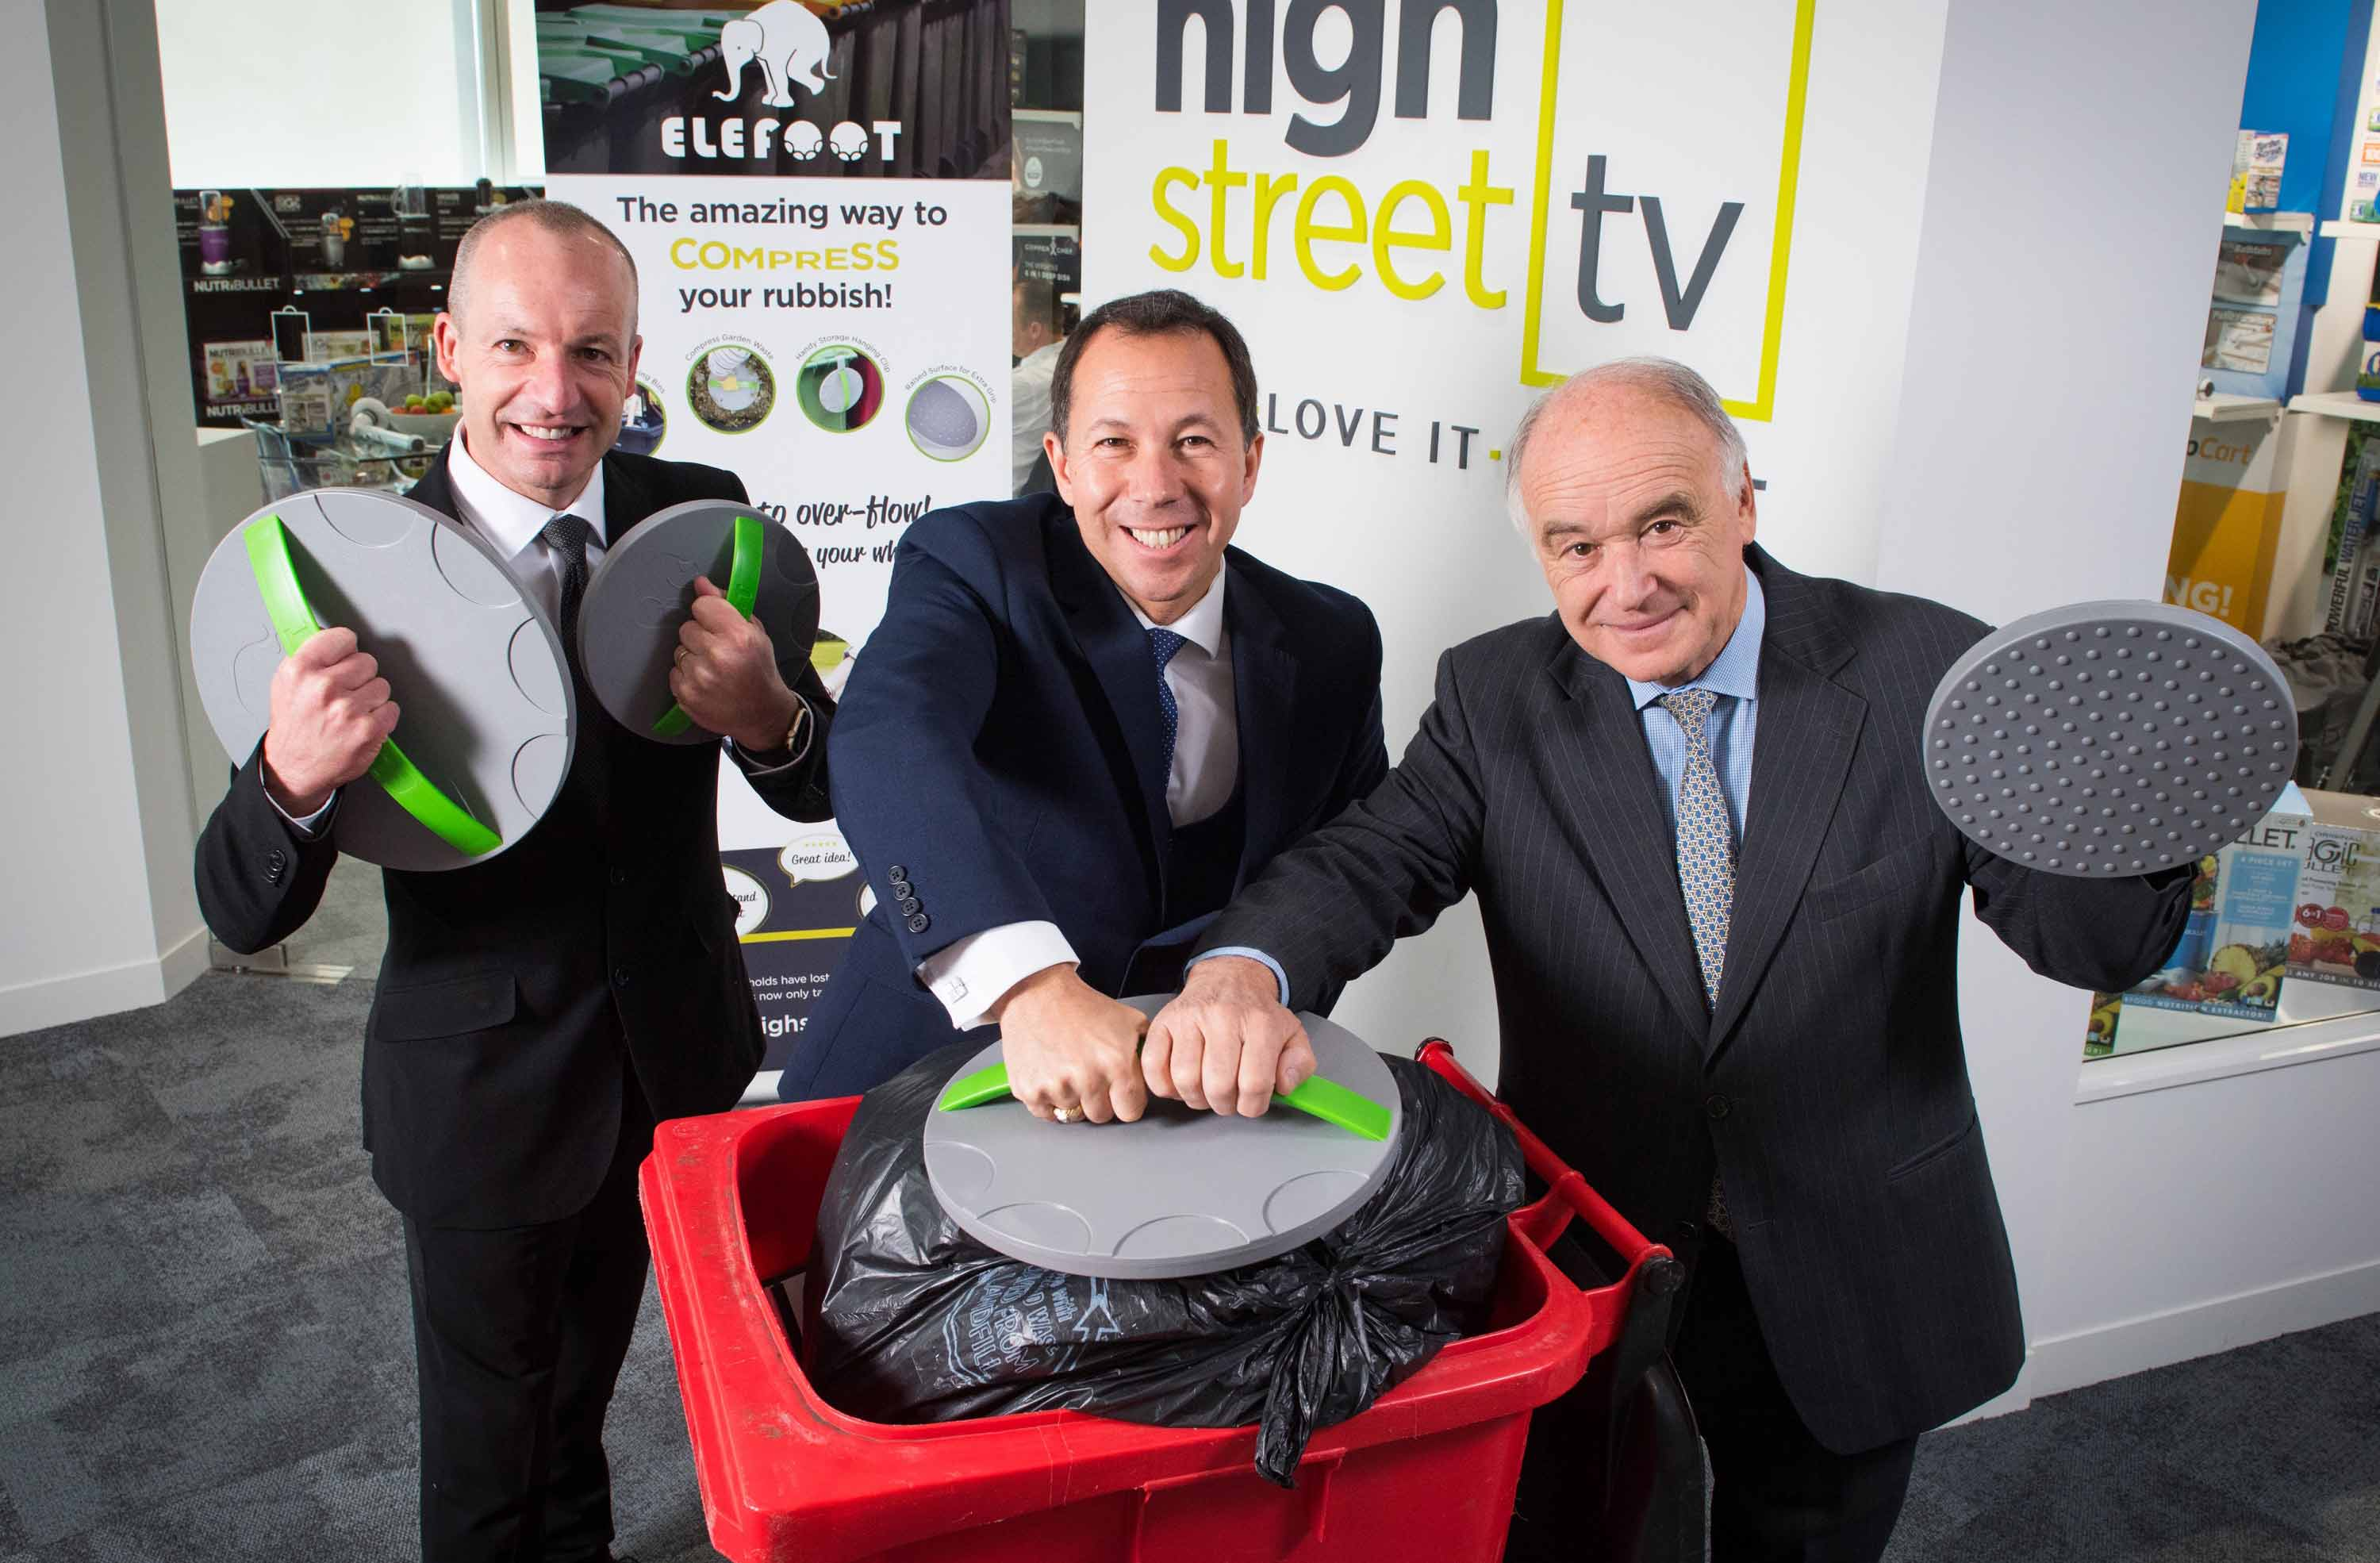 Jim Coleman and Andrew Malcher of High Street TV with Gordon Black and Elefoot